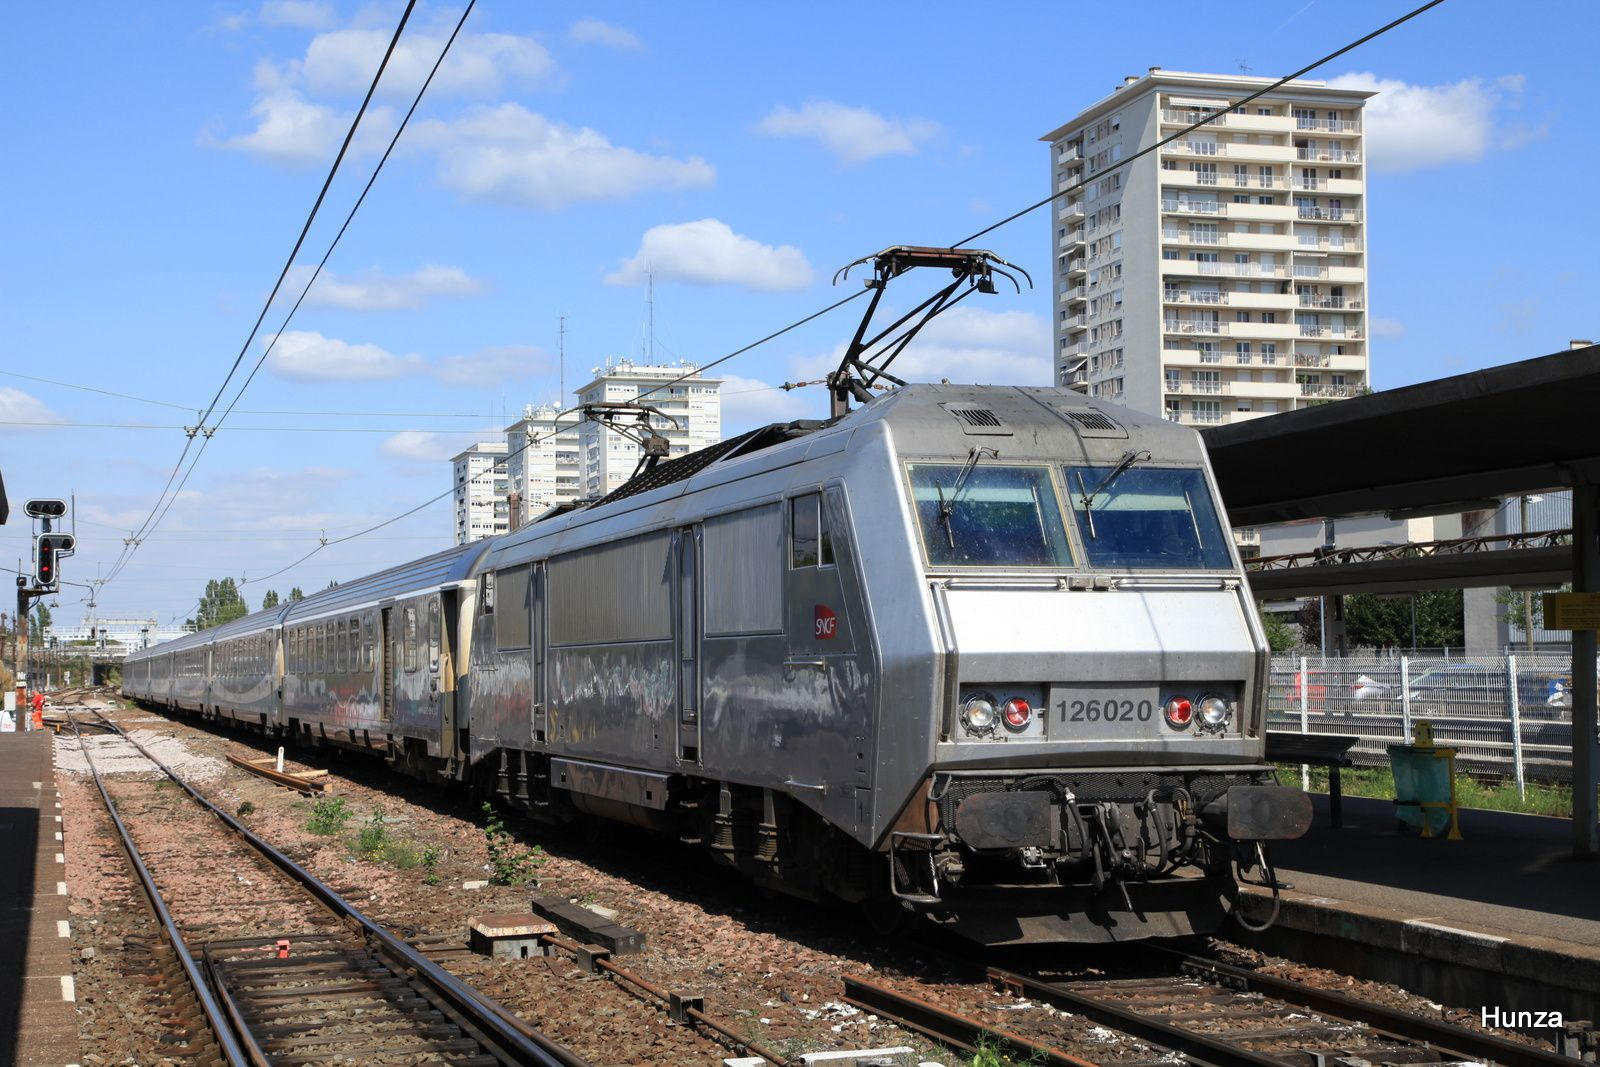 BB 126020 en gare d'Orléans en t^te d'un train en provenance de Paris (7 septembre 2015)